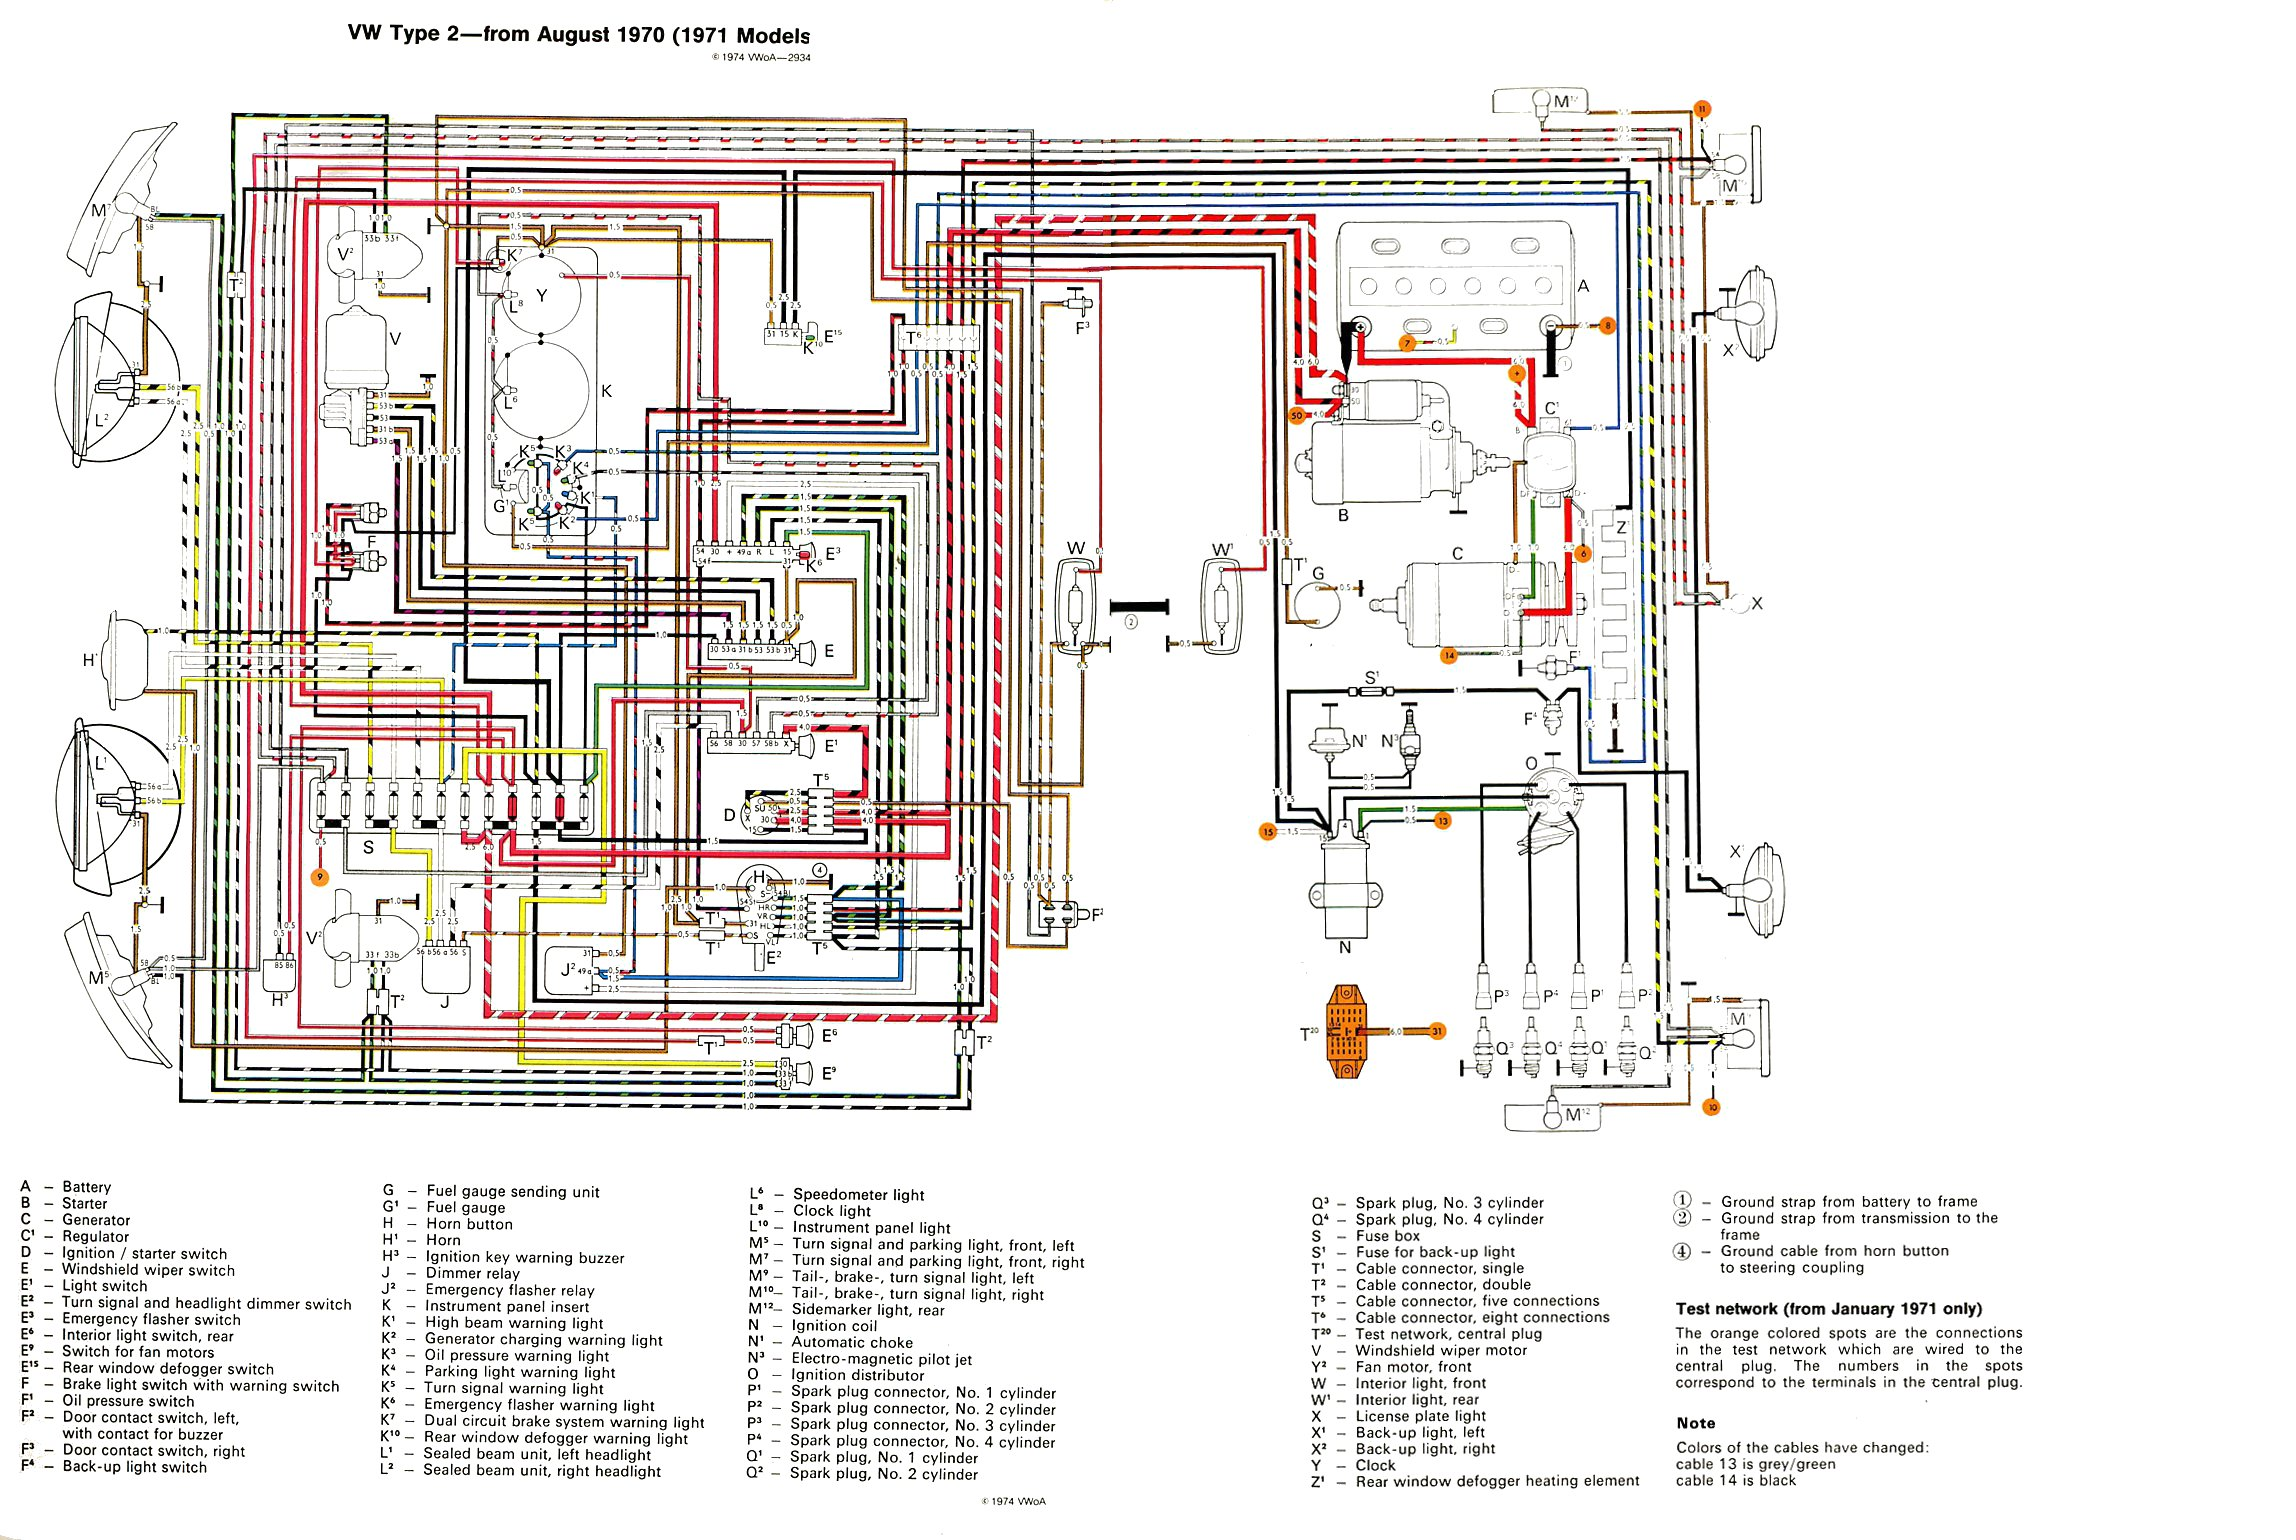 wiring diagram for 1969 corvette data wiring diagrams u2022 rh autoglas schwelm de Delphi Delco Radio Wiring Diagram Delco Electronics Radio Wiring Diagram